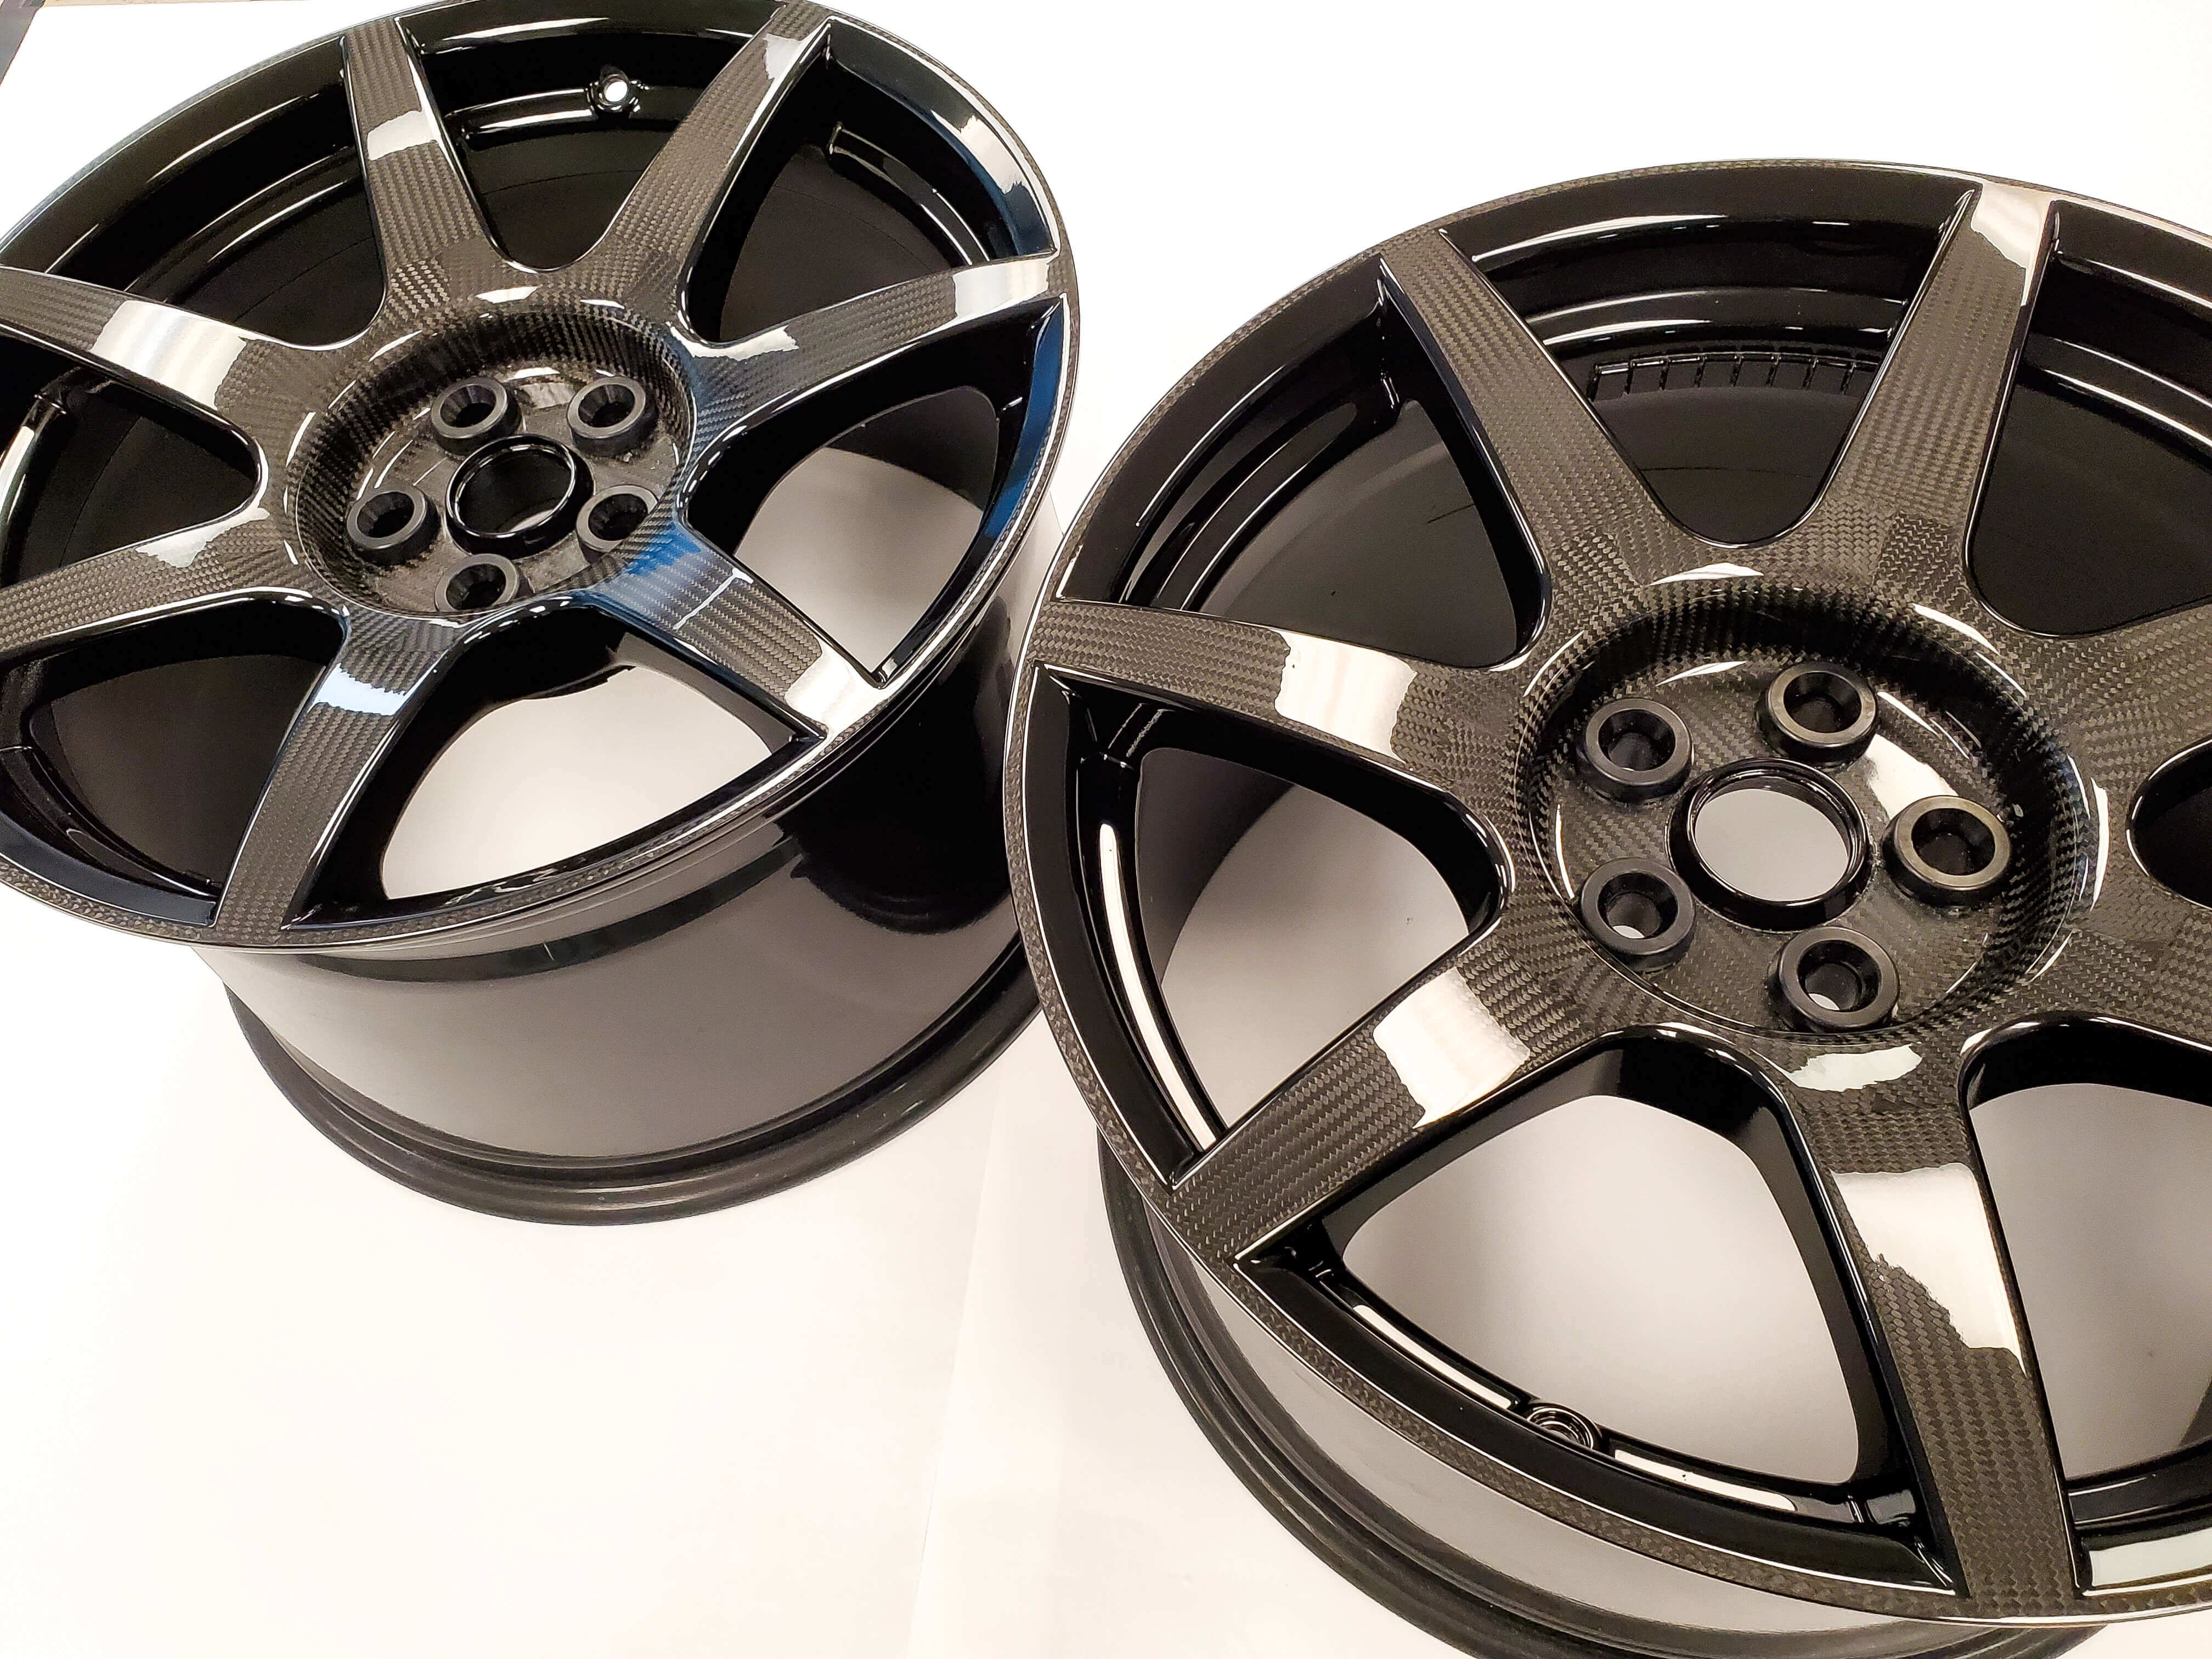 Exposed Carbon Fiber GT350R Wheels by Carbon Signature